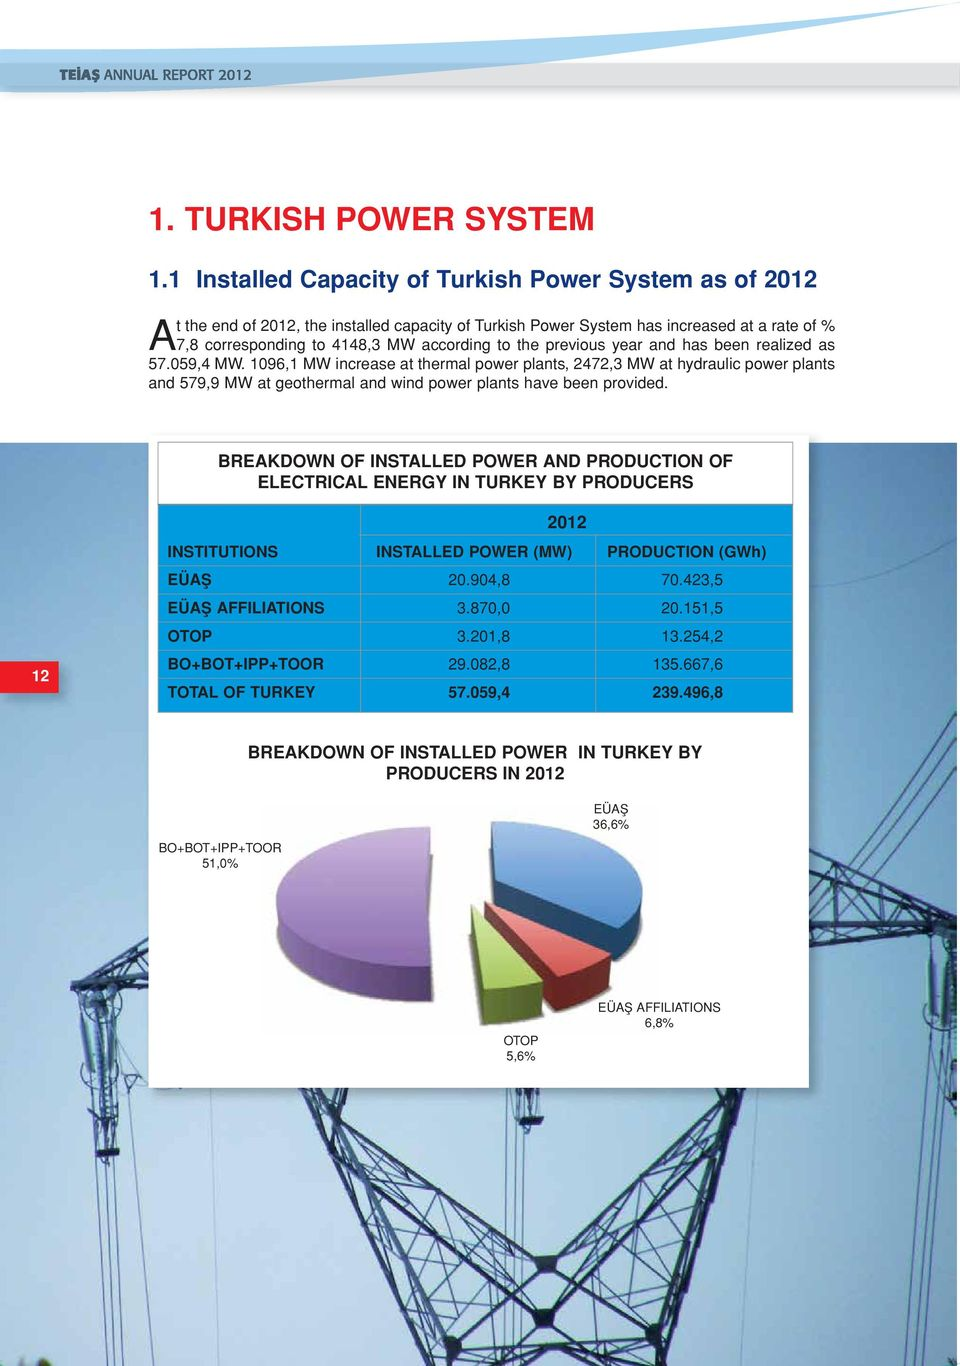 the previous year and has been realized as 57.059,4 MW.